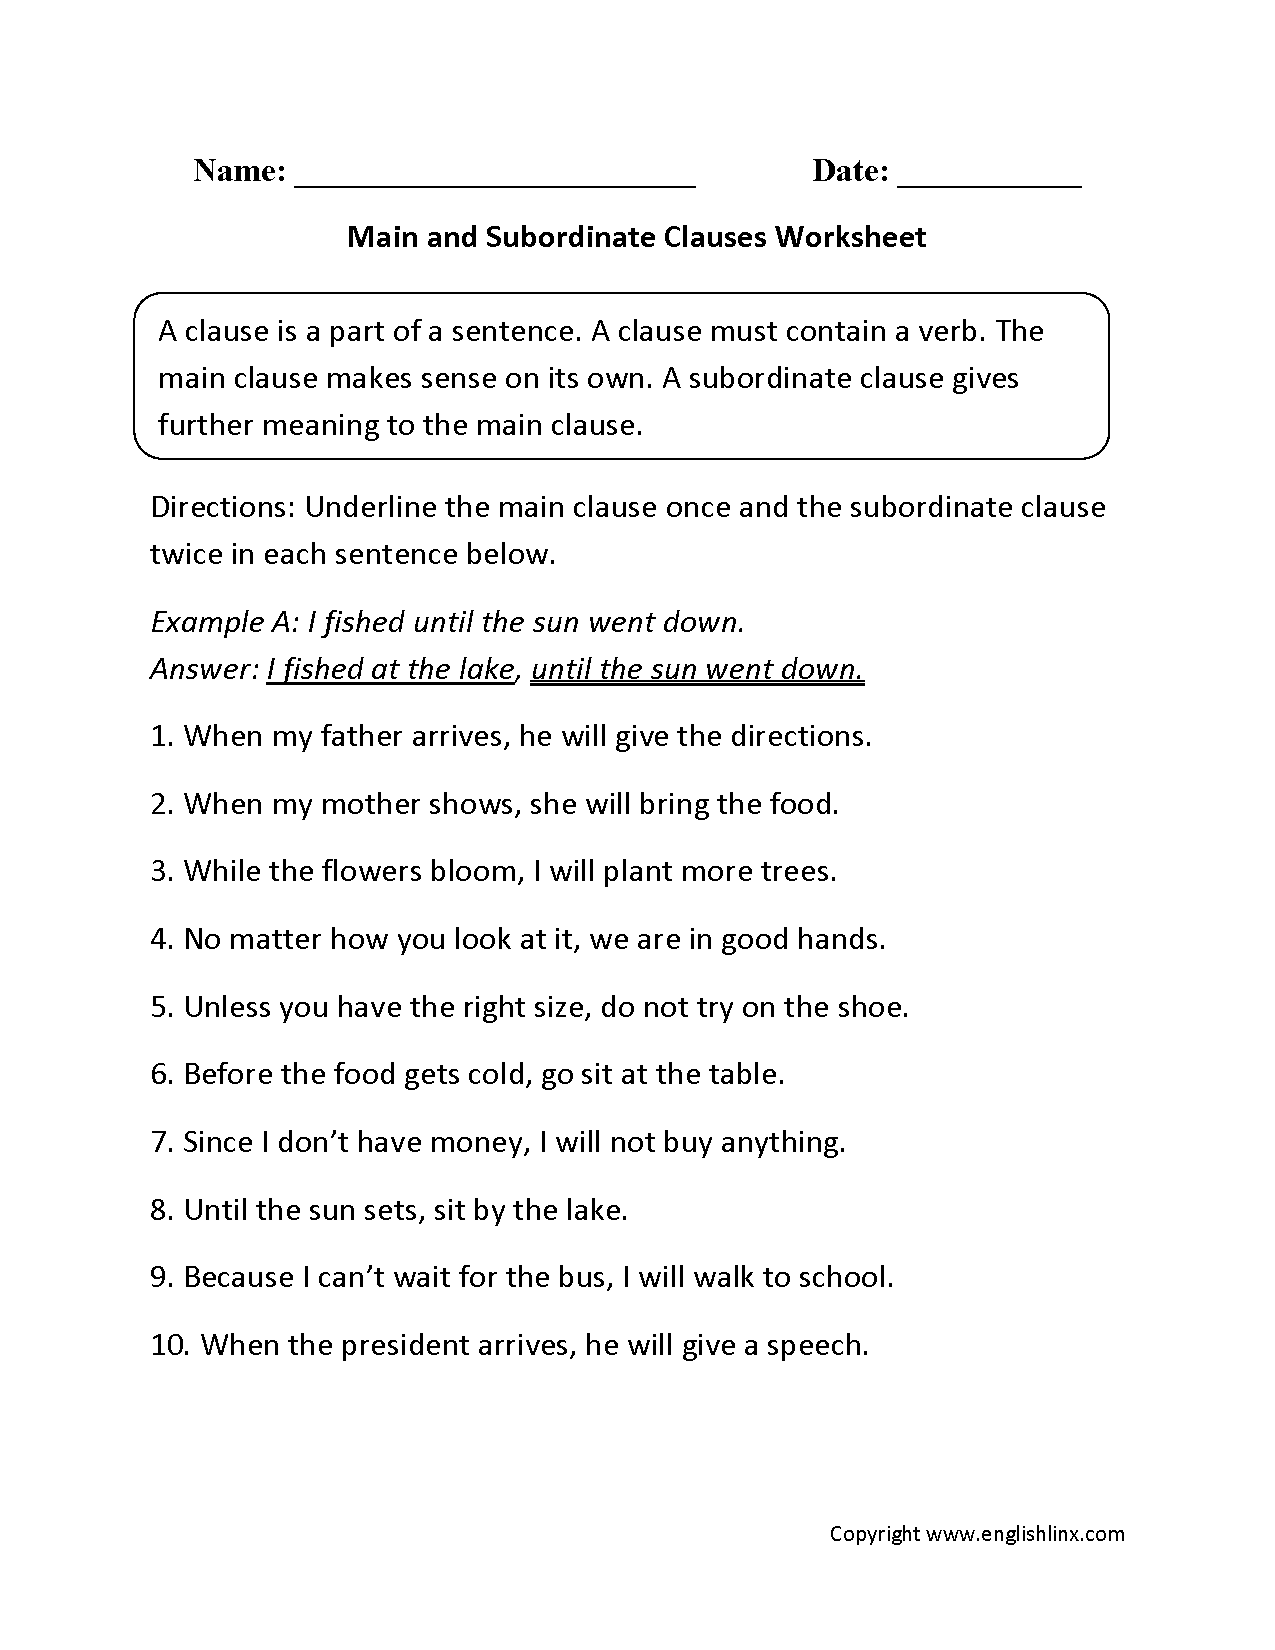 Worksheet Clauses Worksheet englishlinx com clauses worksheets main and subordinate worksheet